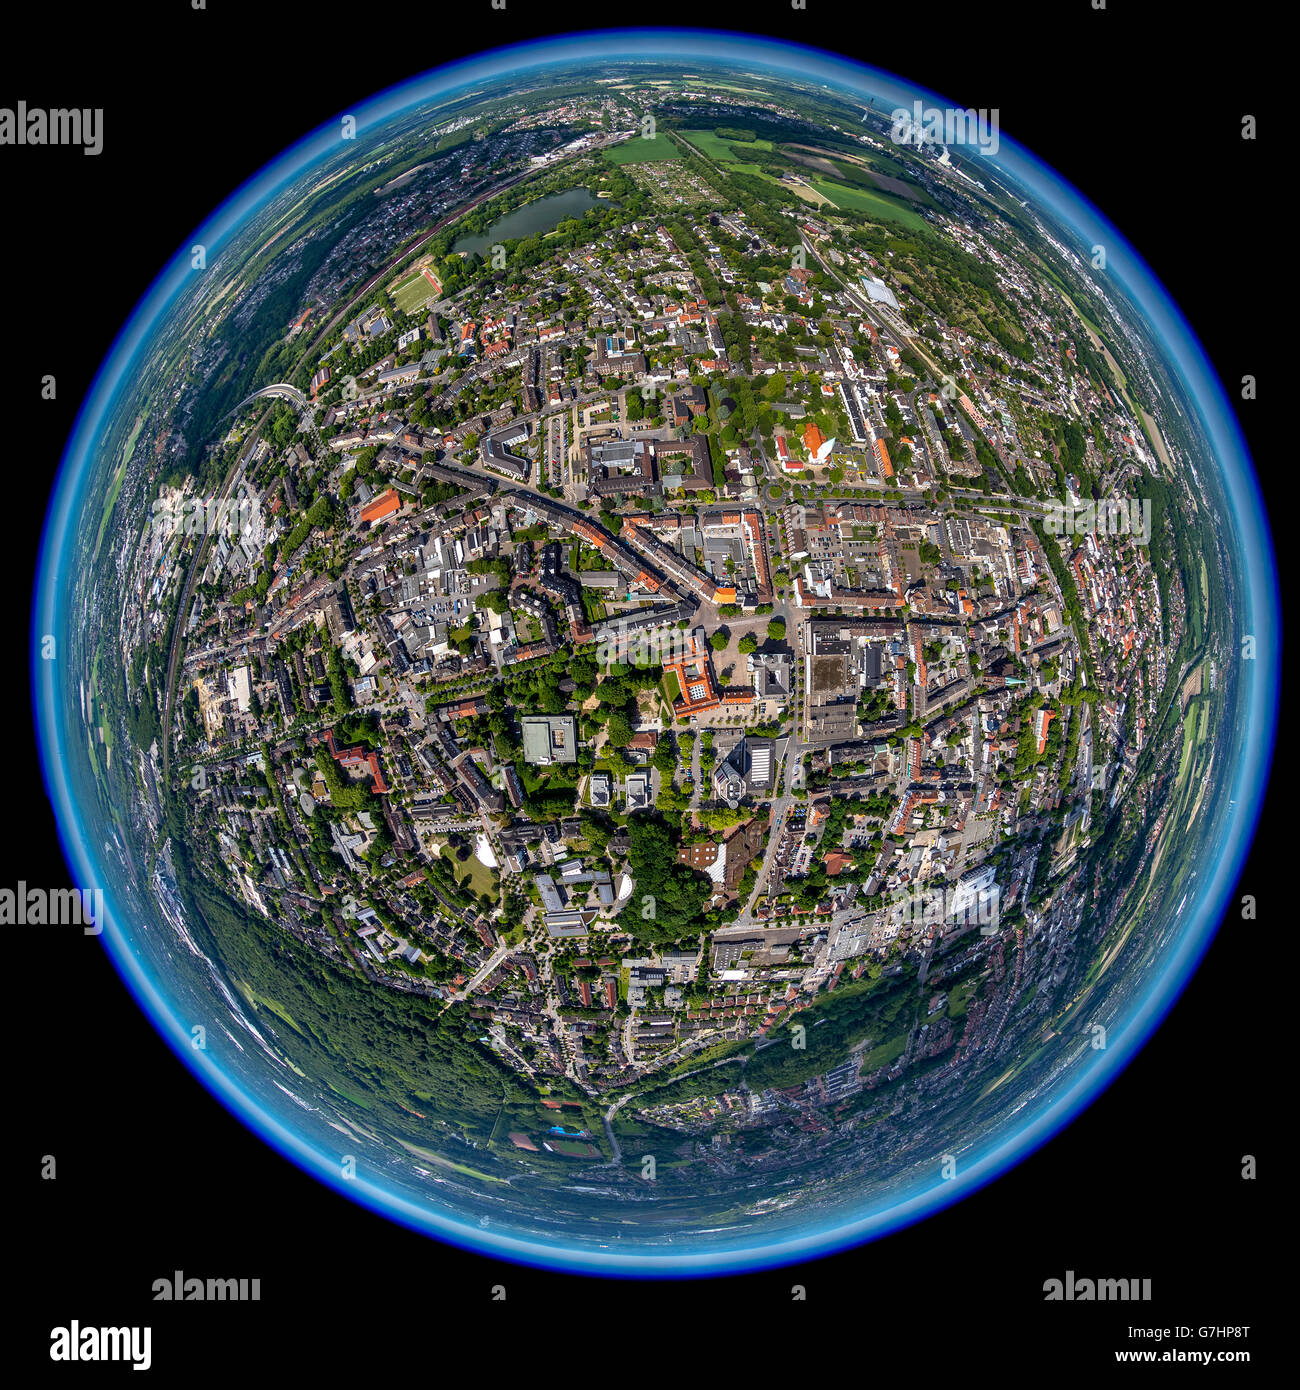 Aerial view, fisheye optics, fisheye lens, overview Gladbeck, Gladbeck, Ruhr Area, North Rhine Westphalia, Germany, - Stock Image